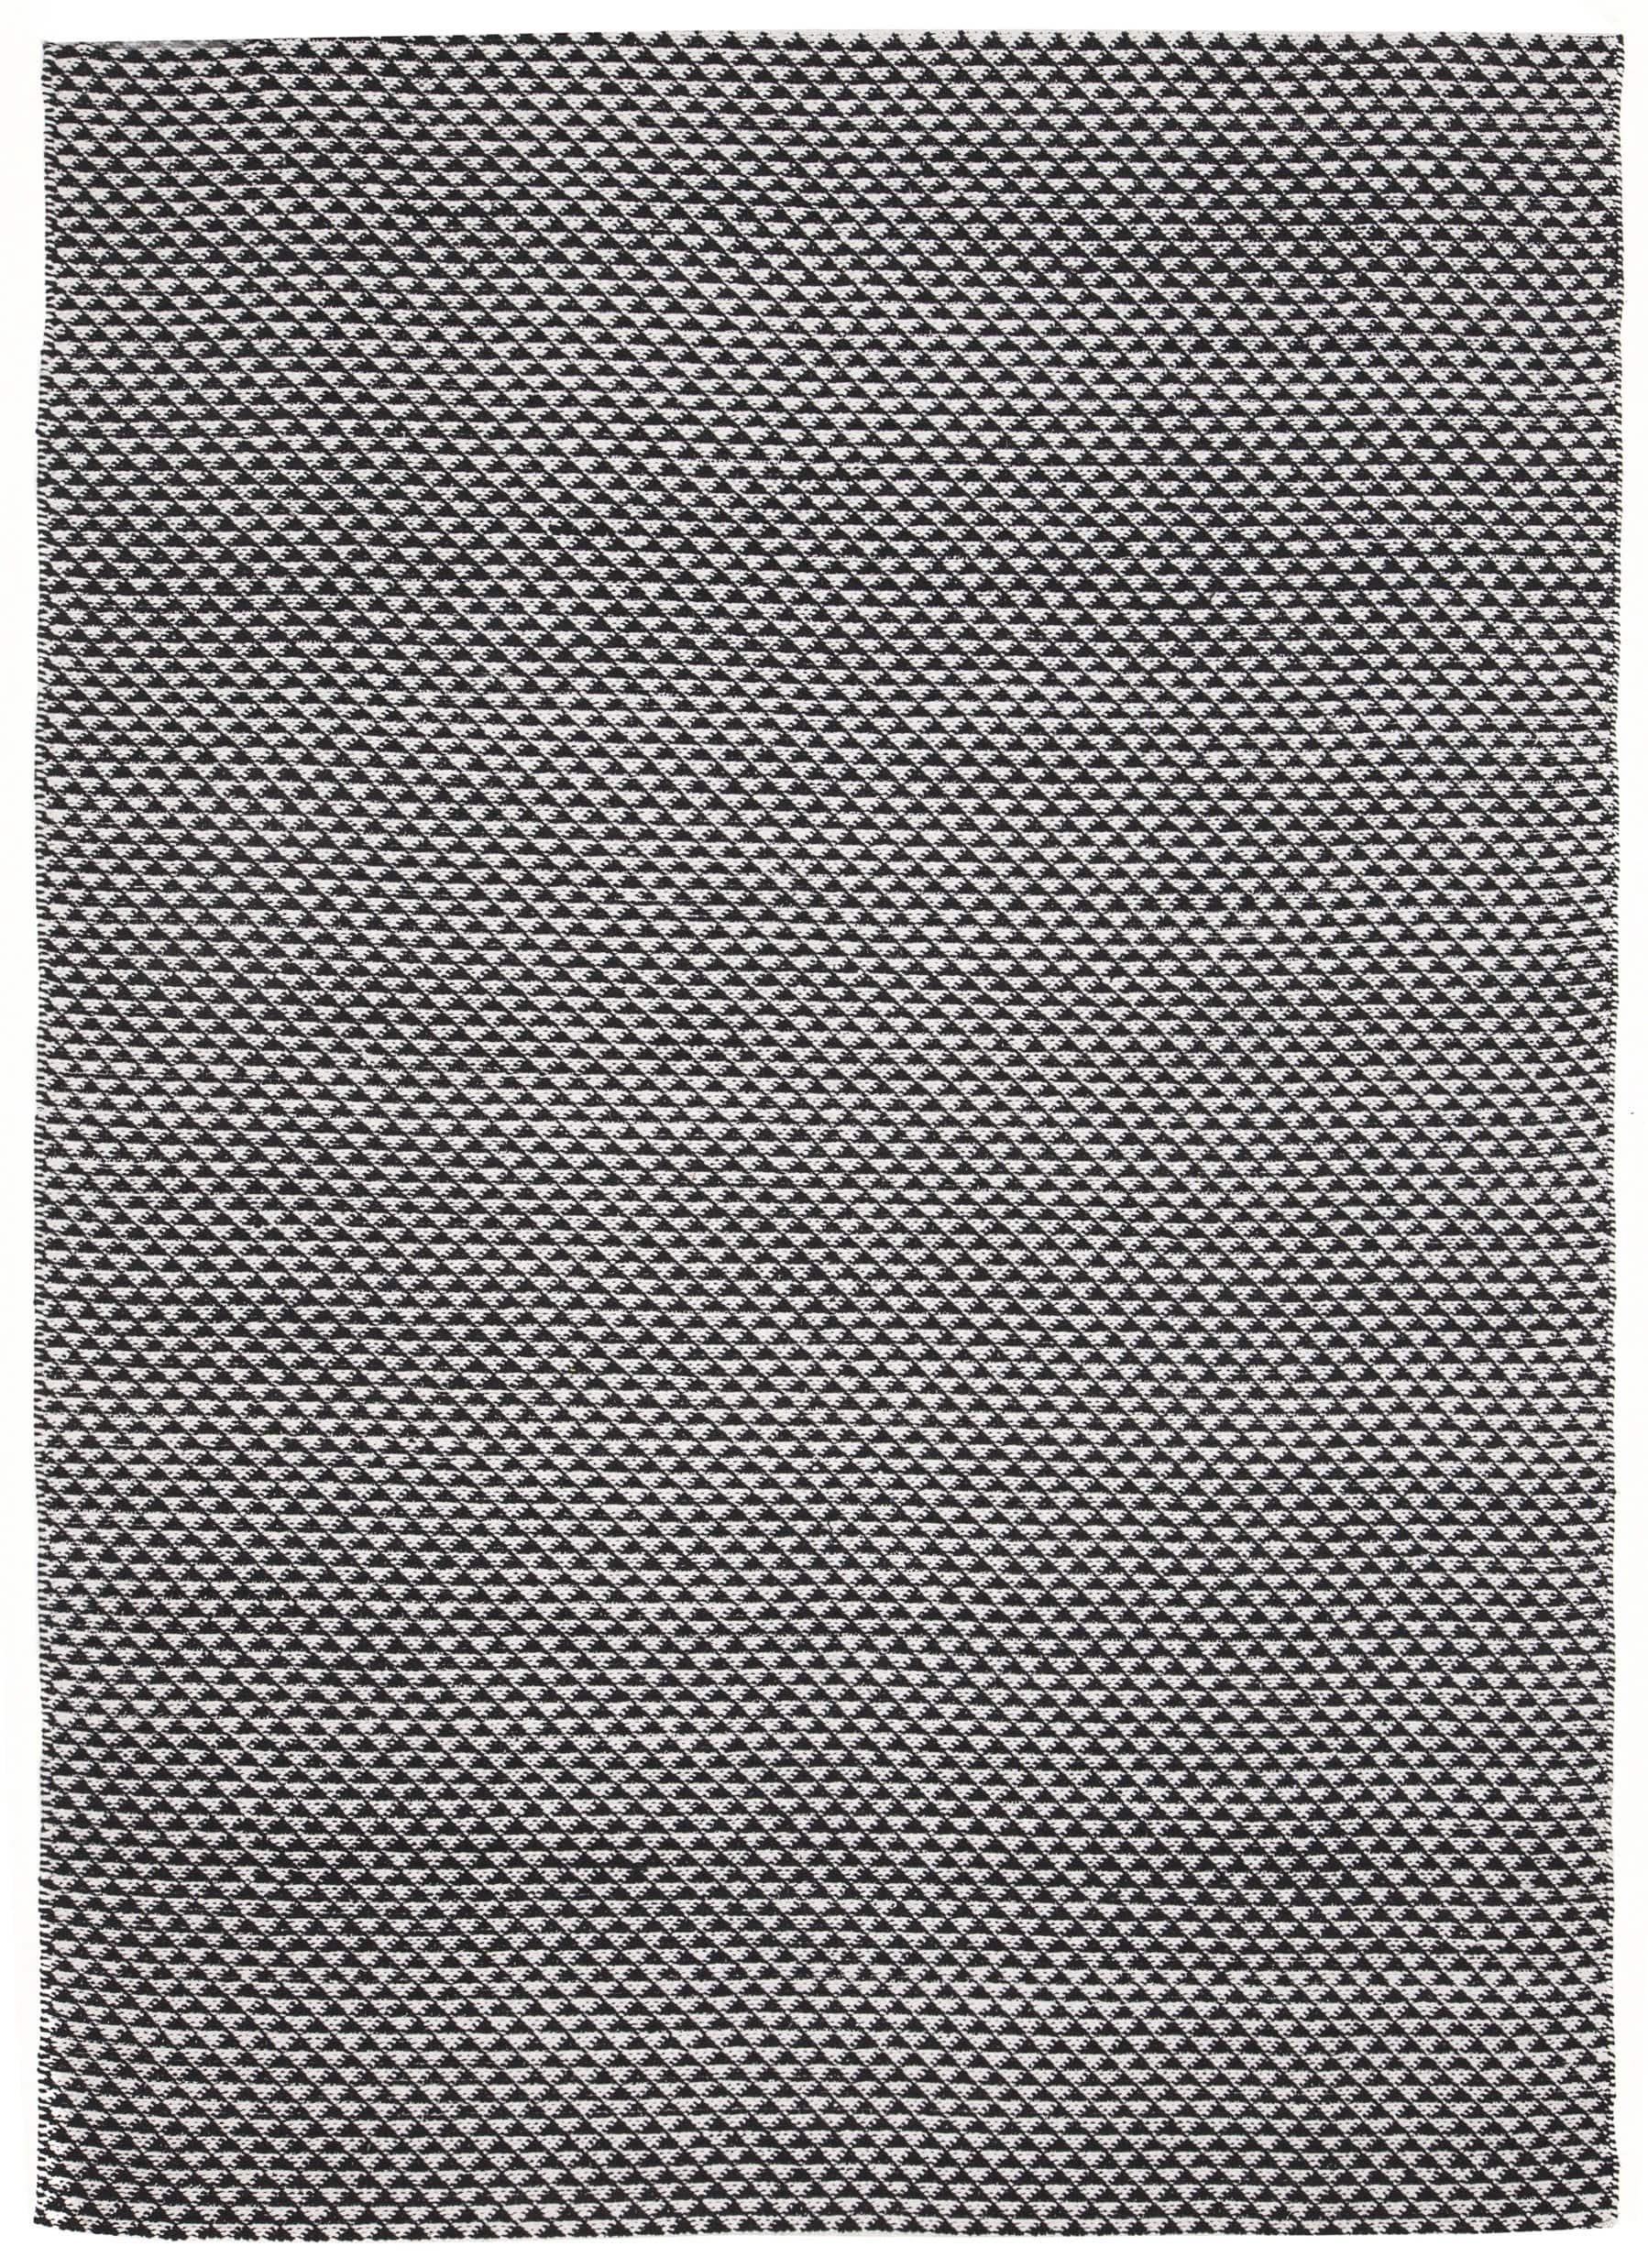 Quebec Black Amp White Mosaic Triangle Rug